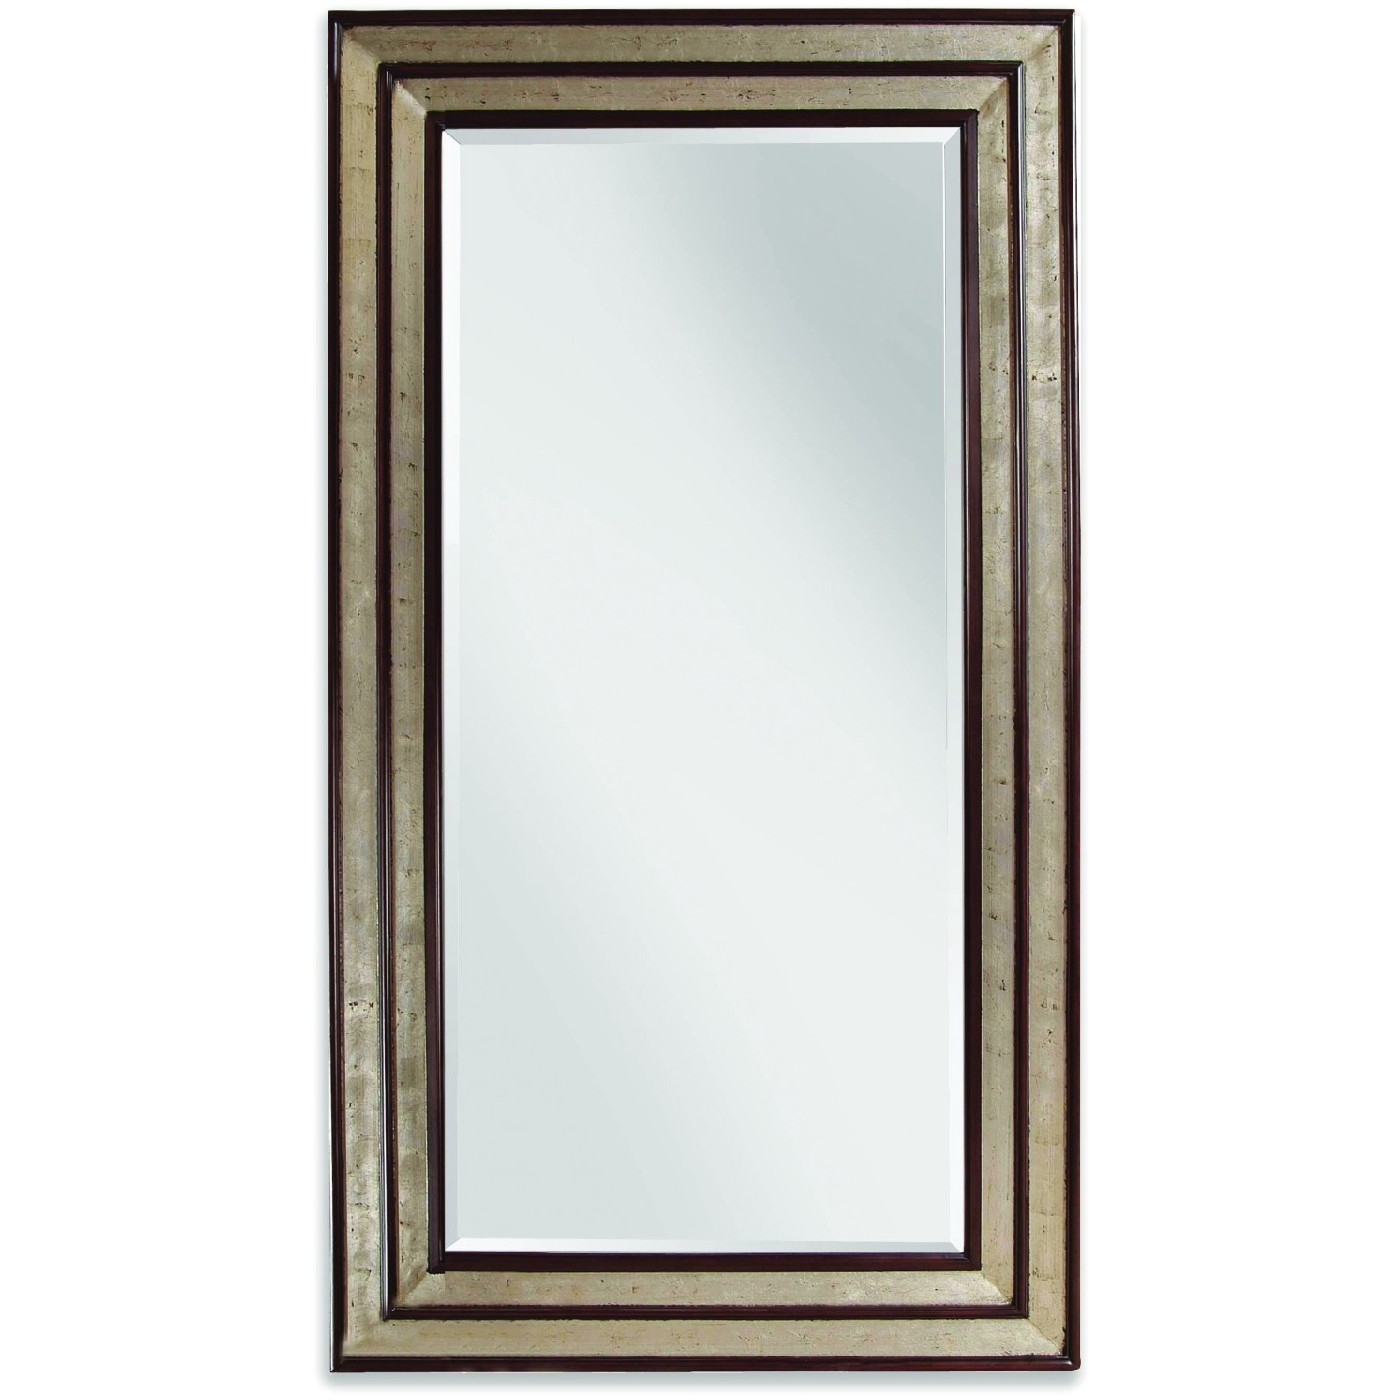 Cyrus traditional extra large leaner floor mirror m2824bec for Leaner mirror